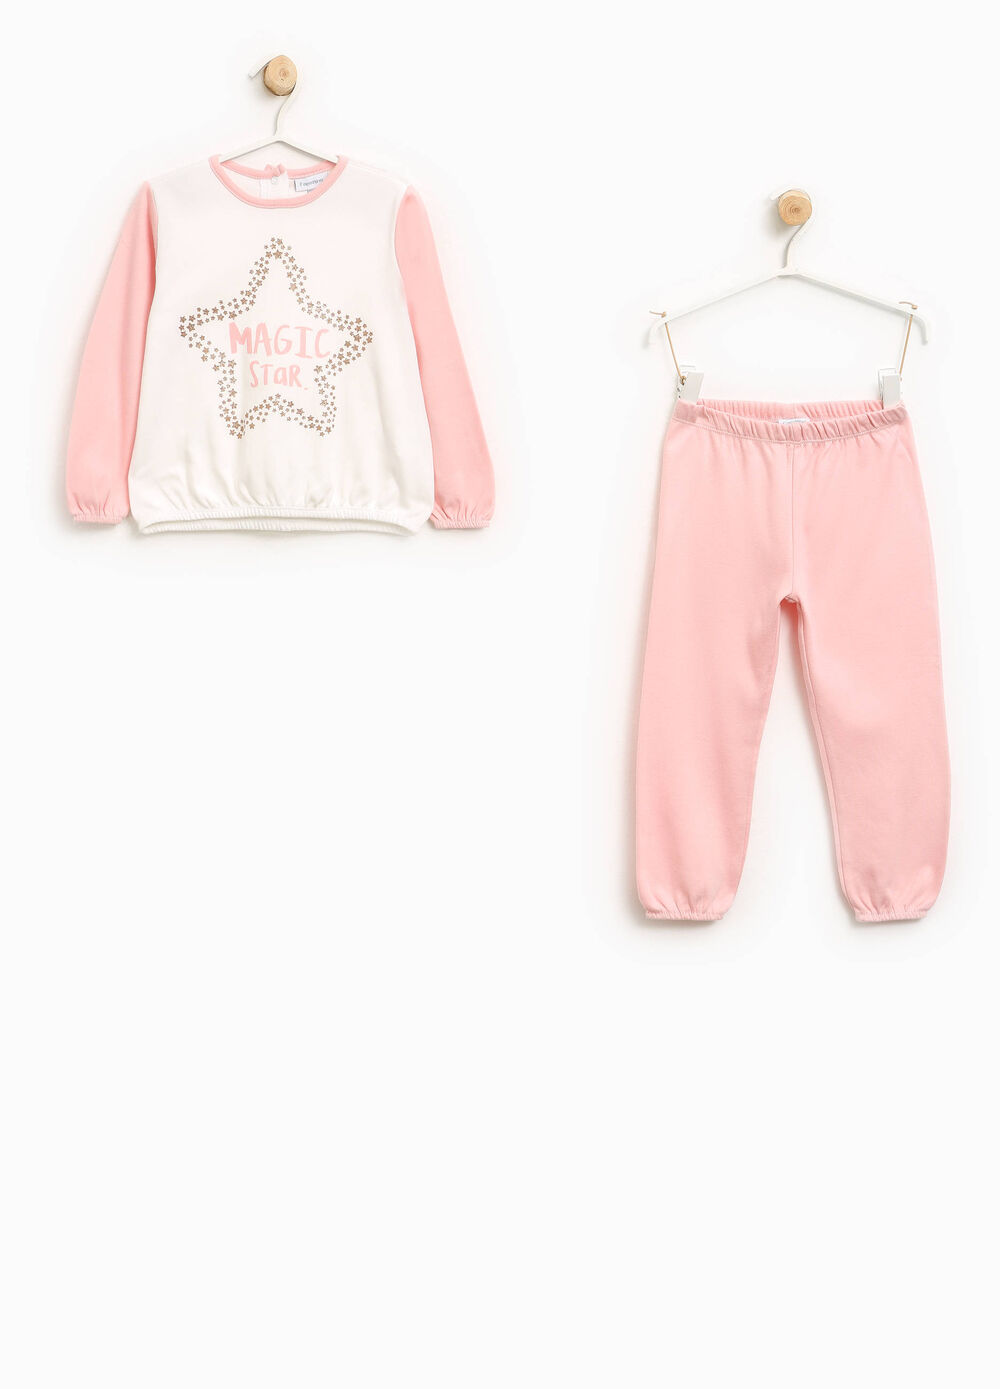 Pyjamas in 100% cotton with glitter print